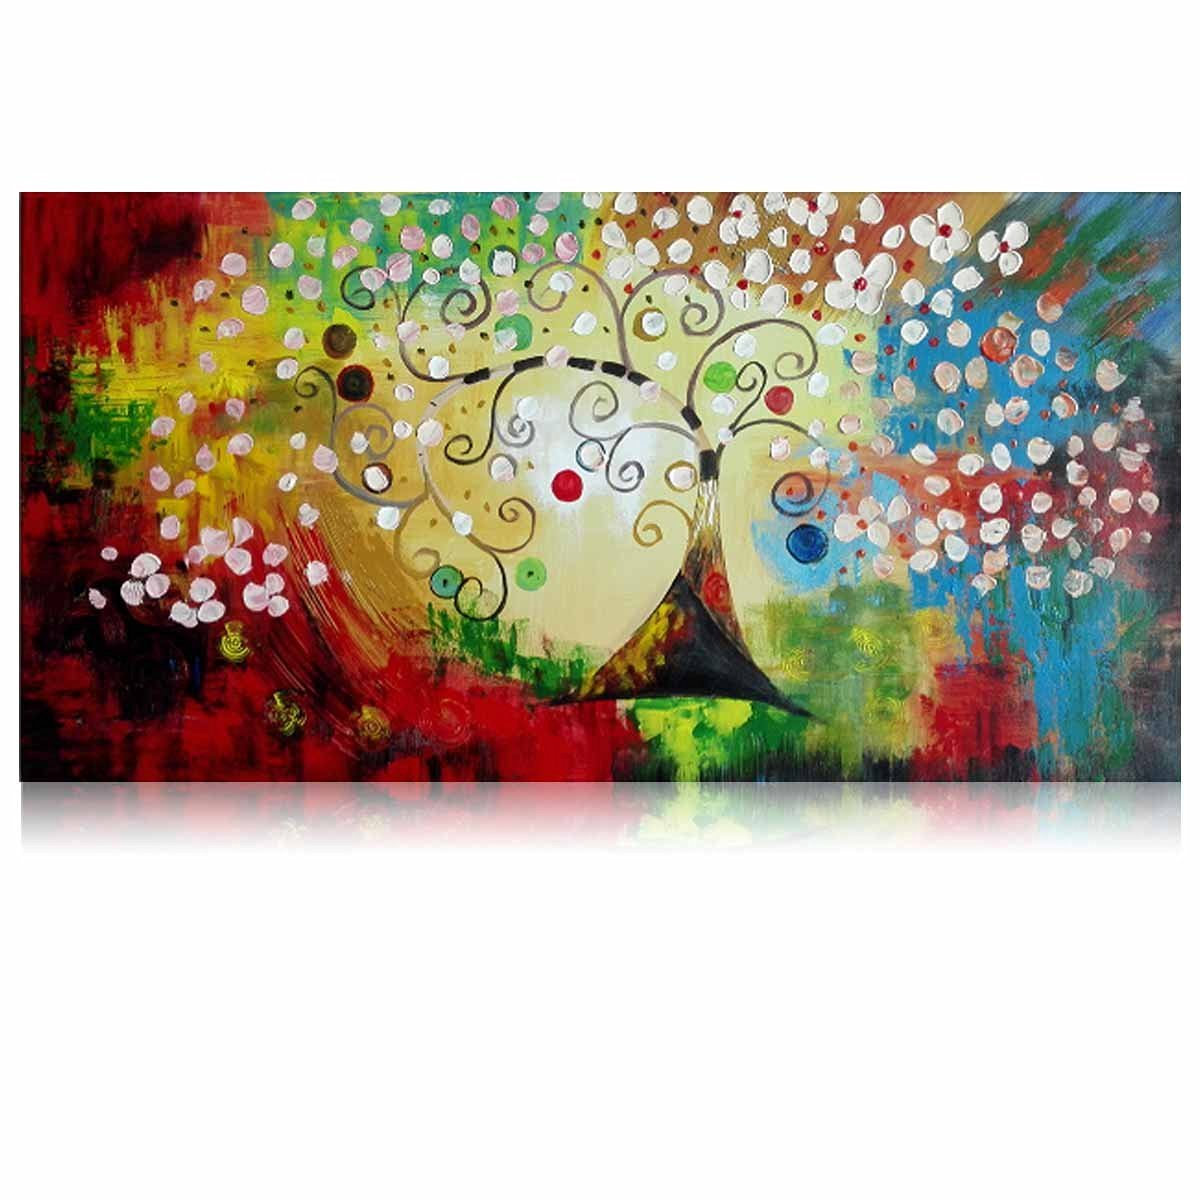 Buy Iarts Handpainted Oil Painting Abstract Art Tree Of Life For